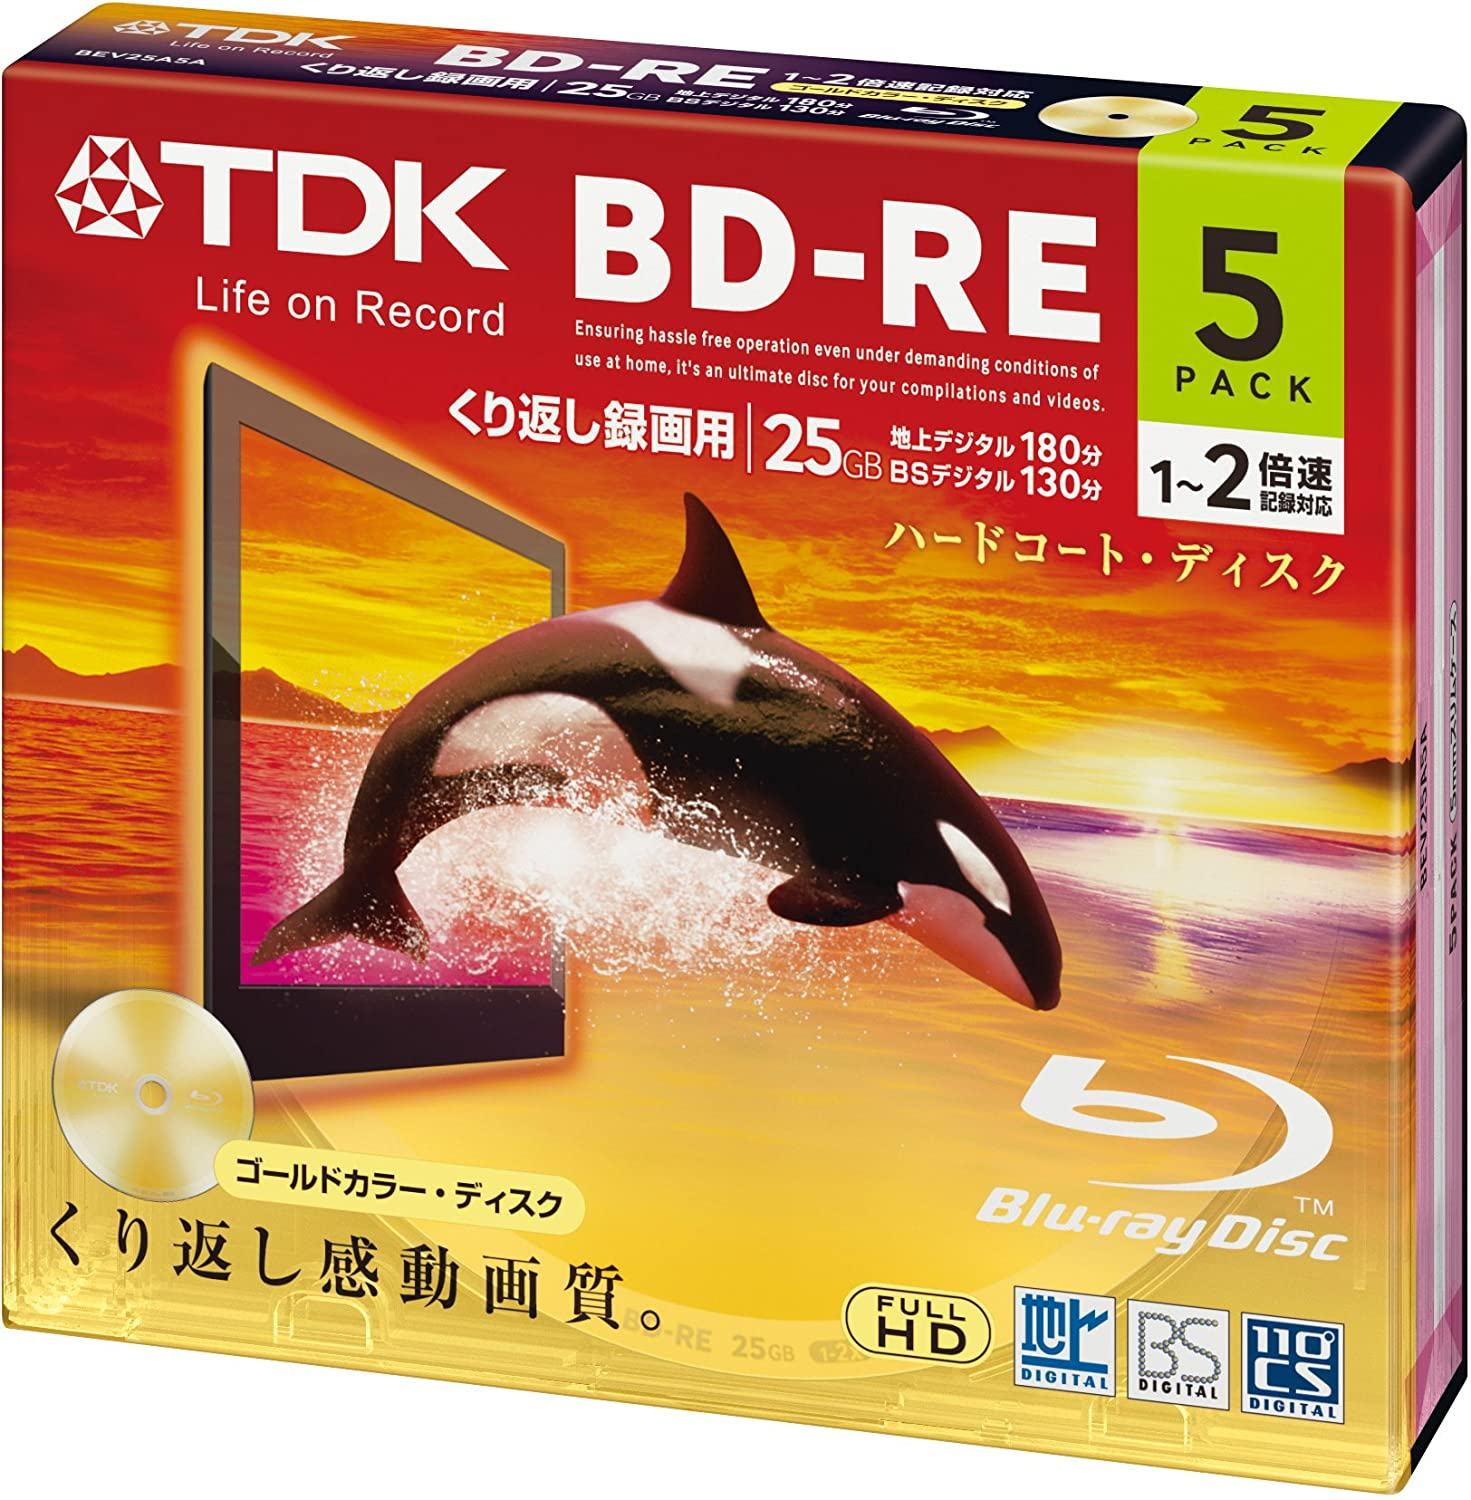 TDK Blu-ray BD-RE Re-writable Gold Color Disk 25GB 2x Speed 5 Pack | Blu-ray Disc Rewritable Format Ver. 2.1 (Japan Import) TDK Media BEV25A5A